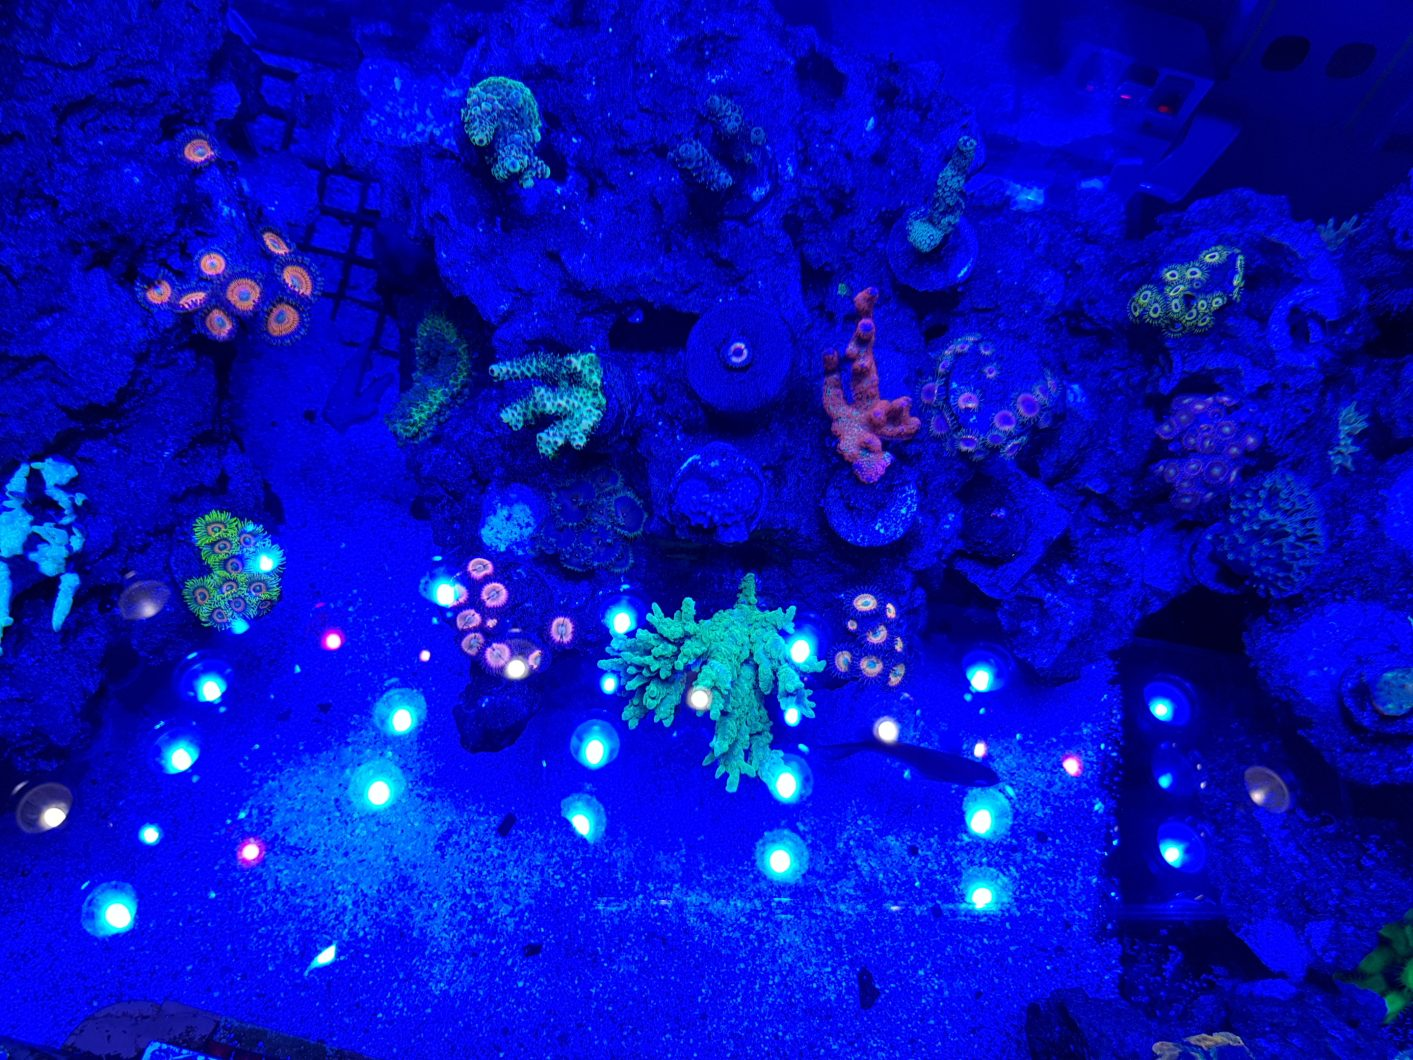 aquarium_moonlight_led